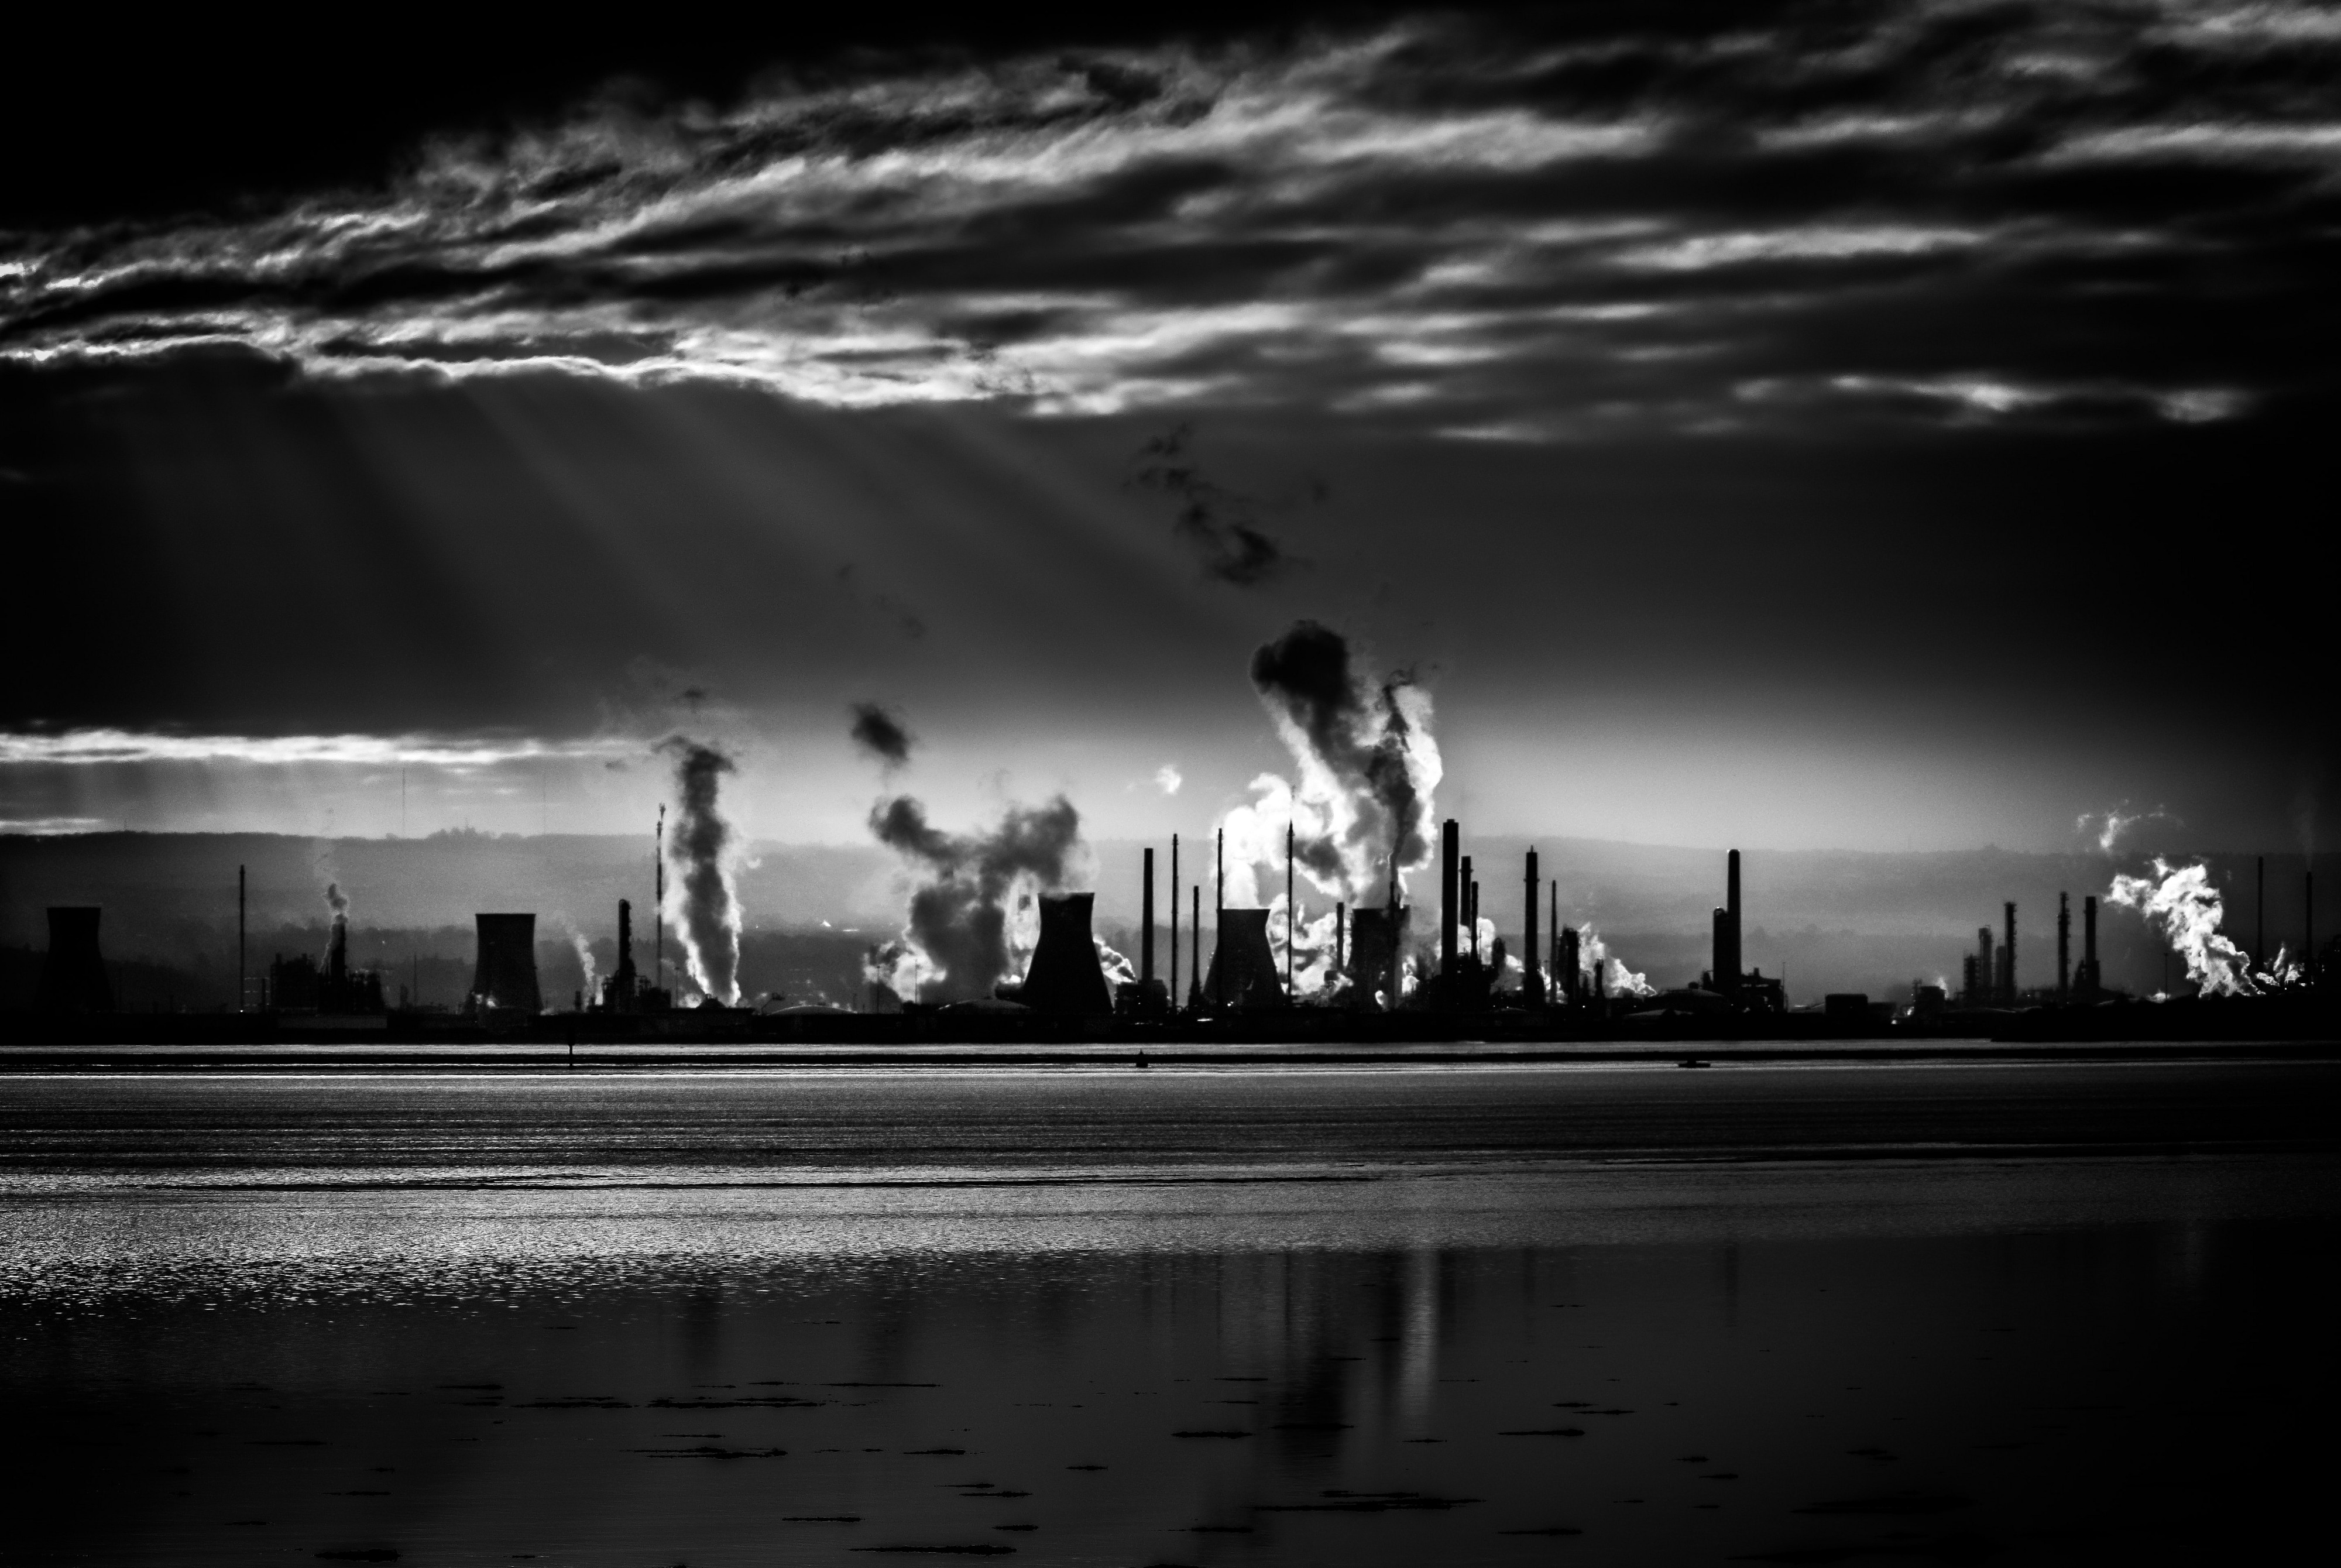 Silhouette of a power plant with cooling towers and trails of clouds.